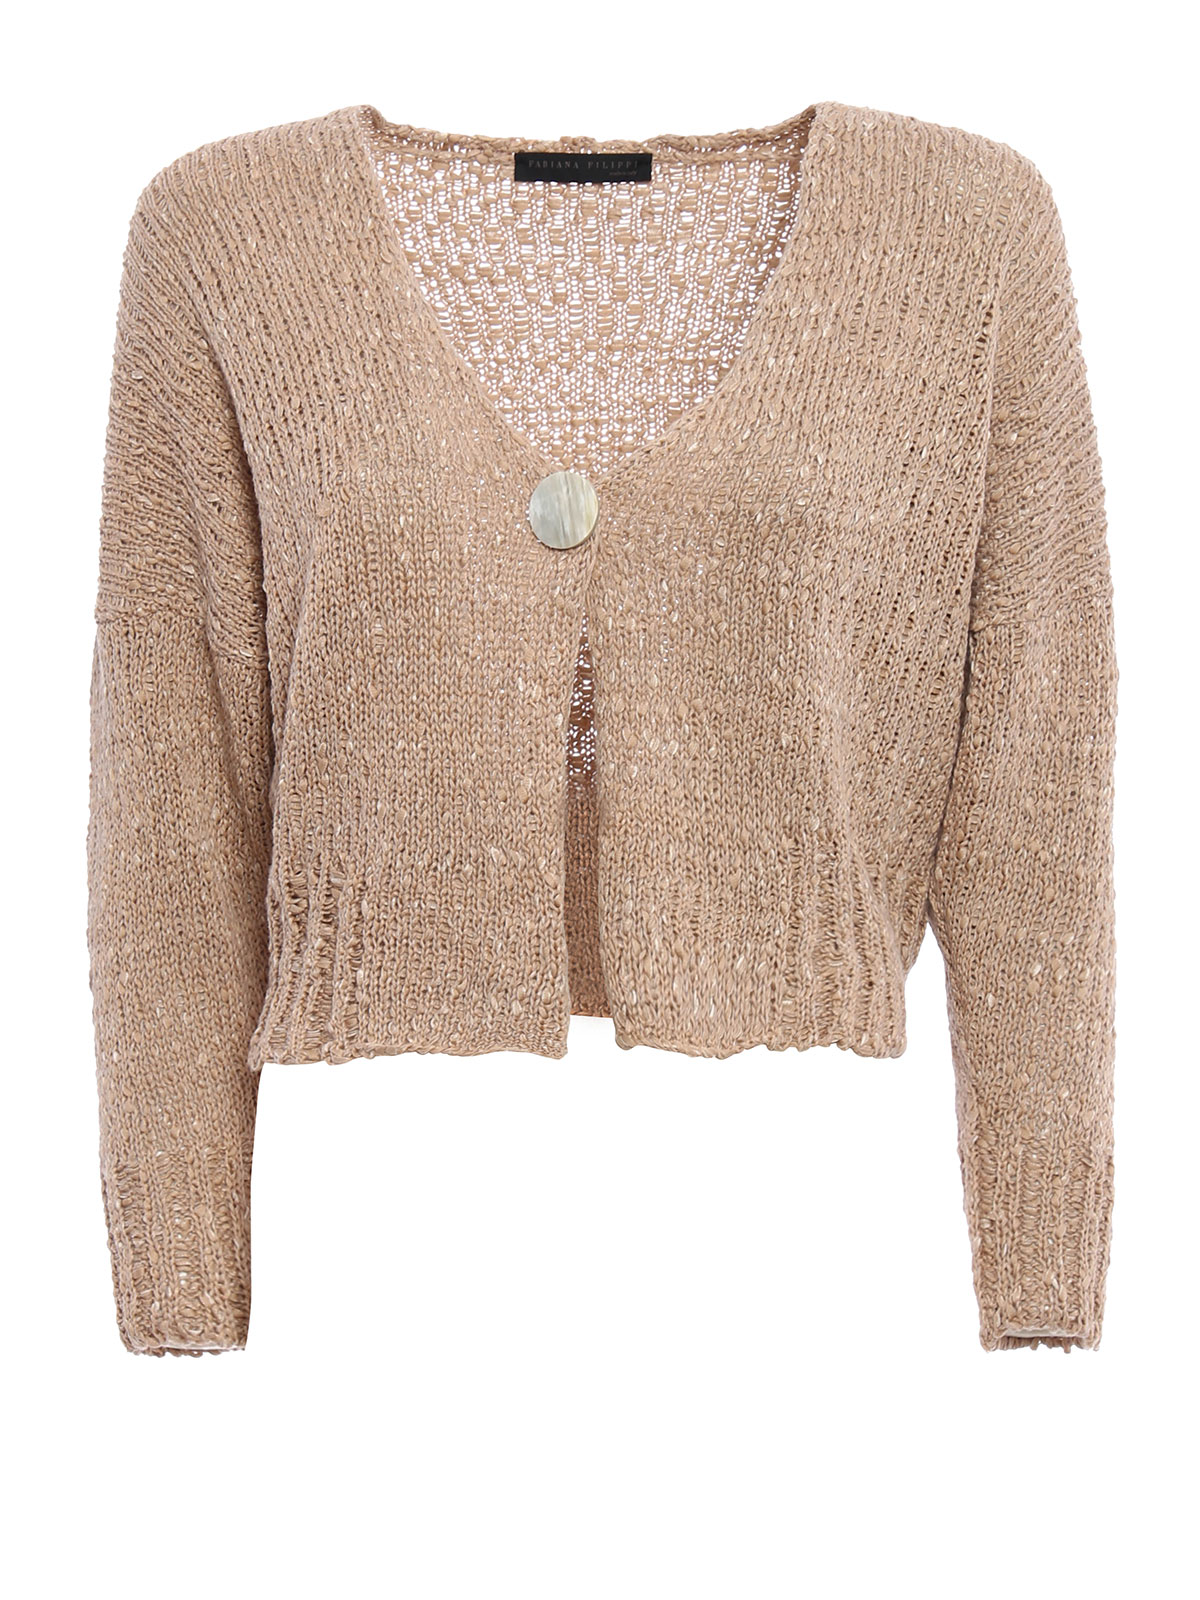 Knitting Edges Uneven : Uneven knitted cotton crop cardigan by fabiana filippi